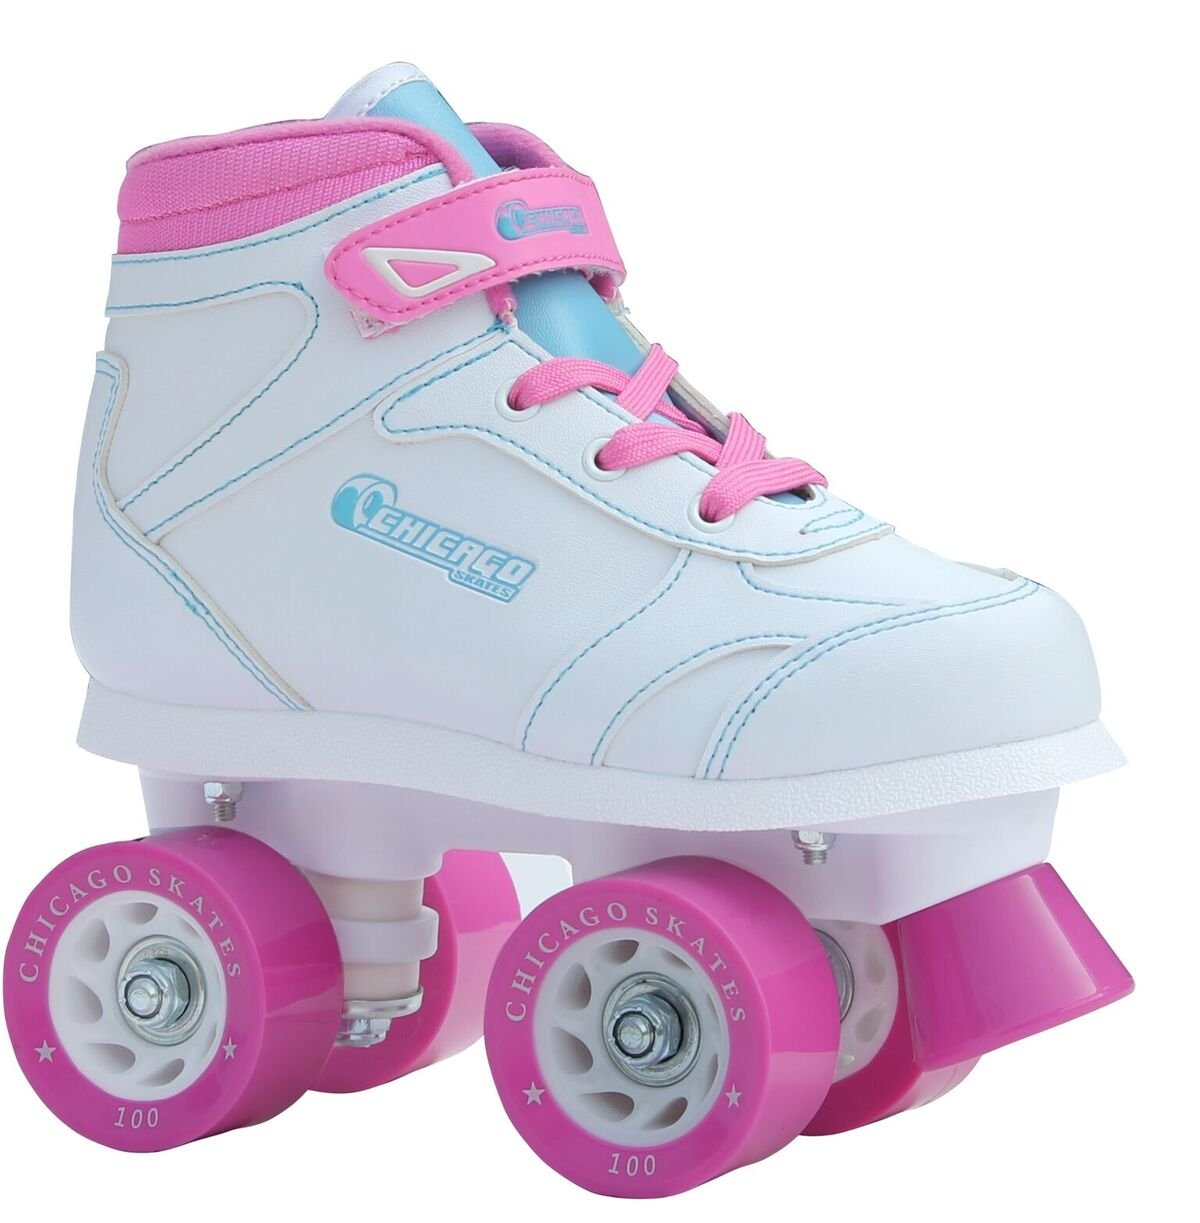 Top 10 Best Roller Skates (2020 Reviews & Buying Guide) 7